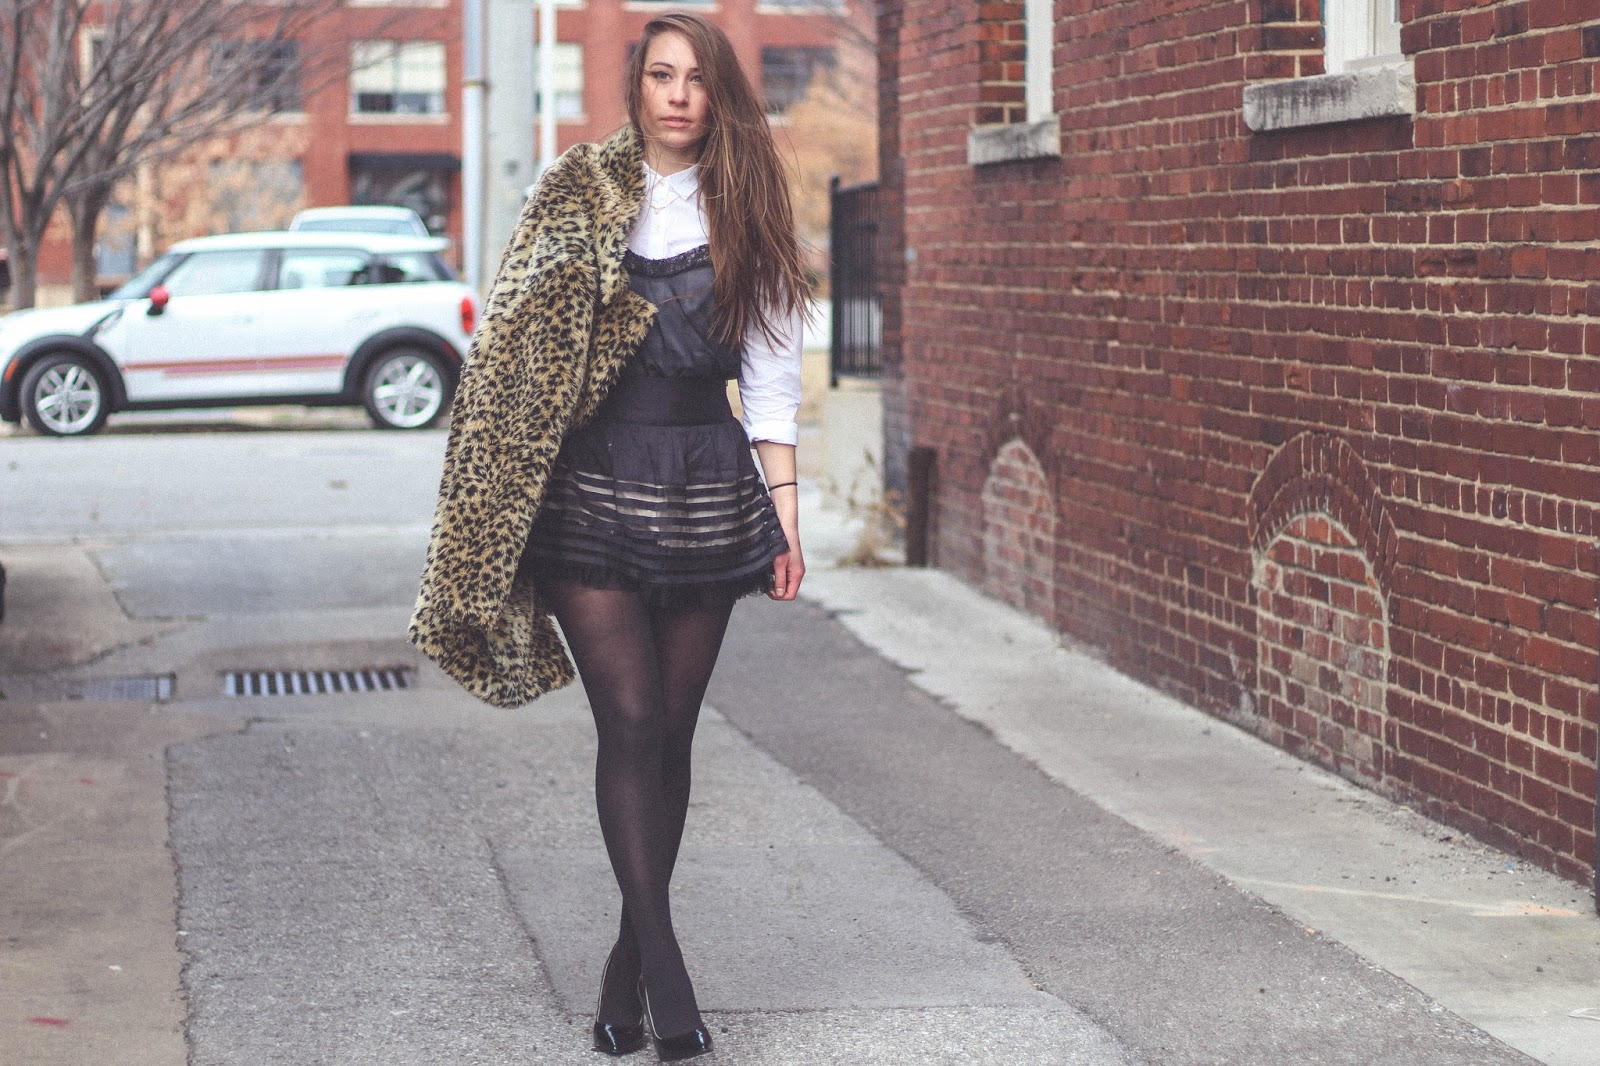 black and white outfit, monochrome outfit, classy outfit, audrey hepburn style,